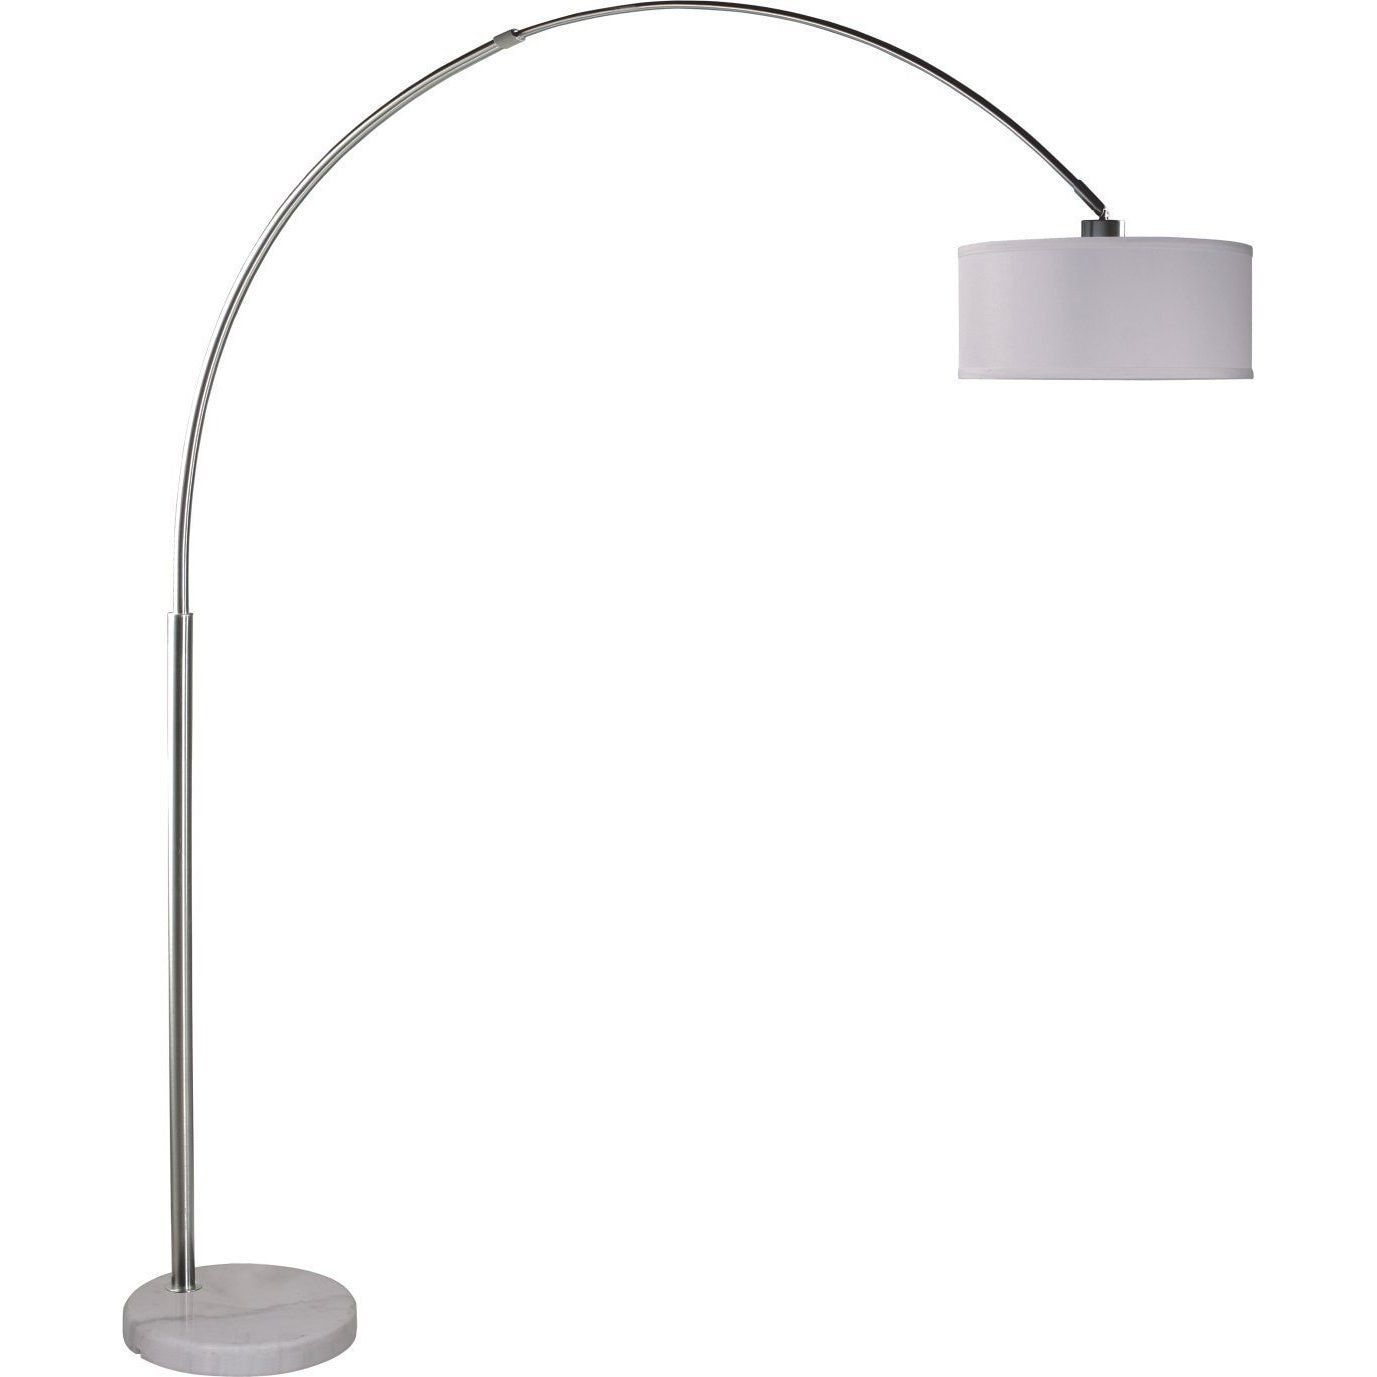 Q-Max Brushed Steel Adjustable Arching Floor Lamp with Shade and Marble Base